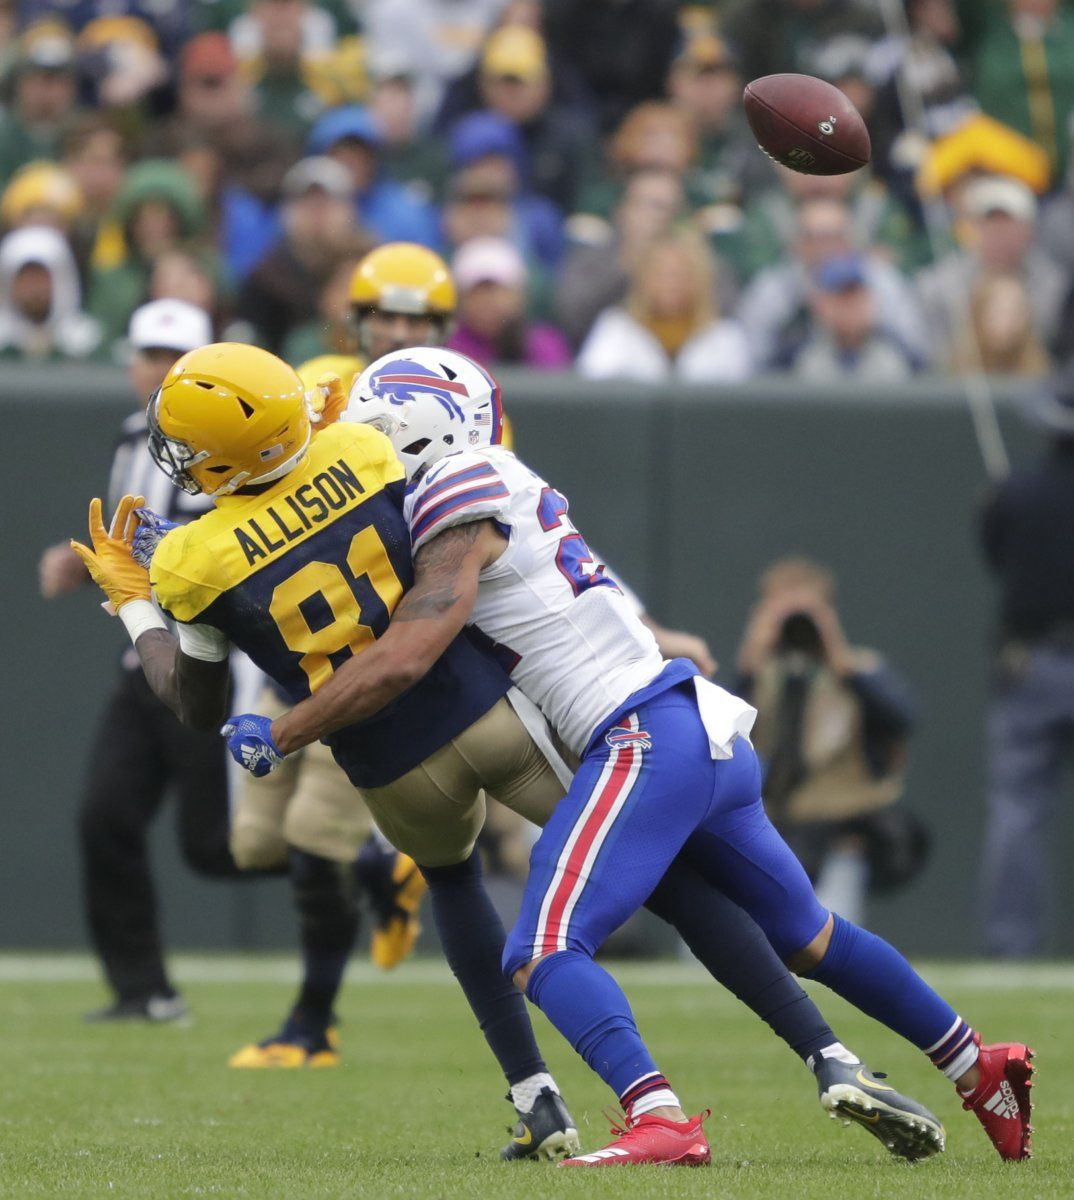 Were The Packers Snake Bit With Serious Injuries Last Season Injury Serious Injury Packers